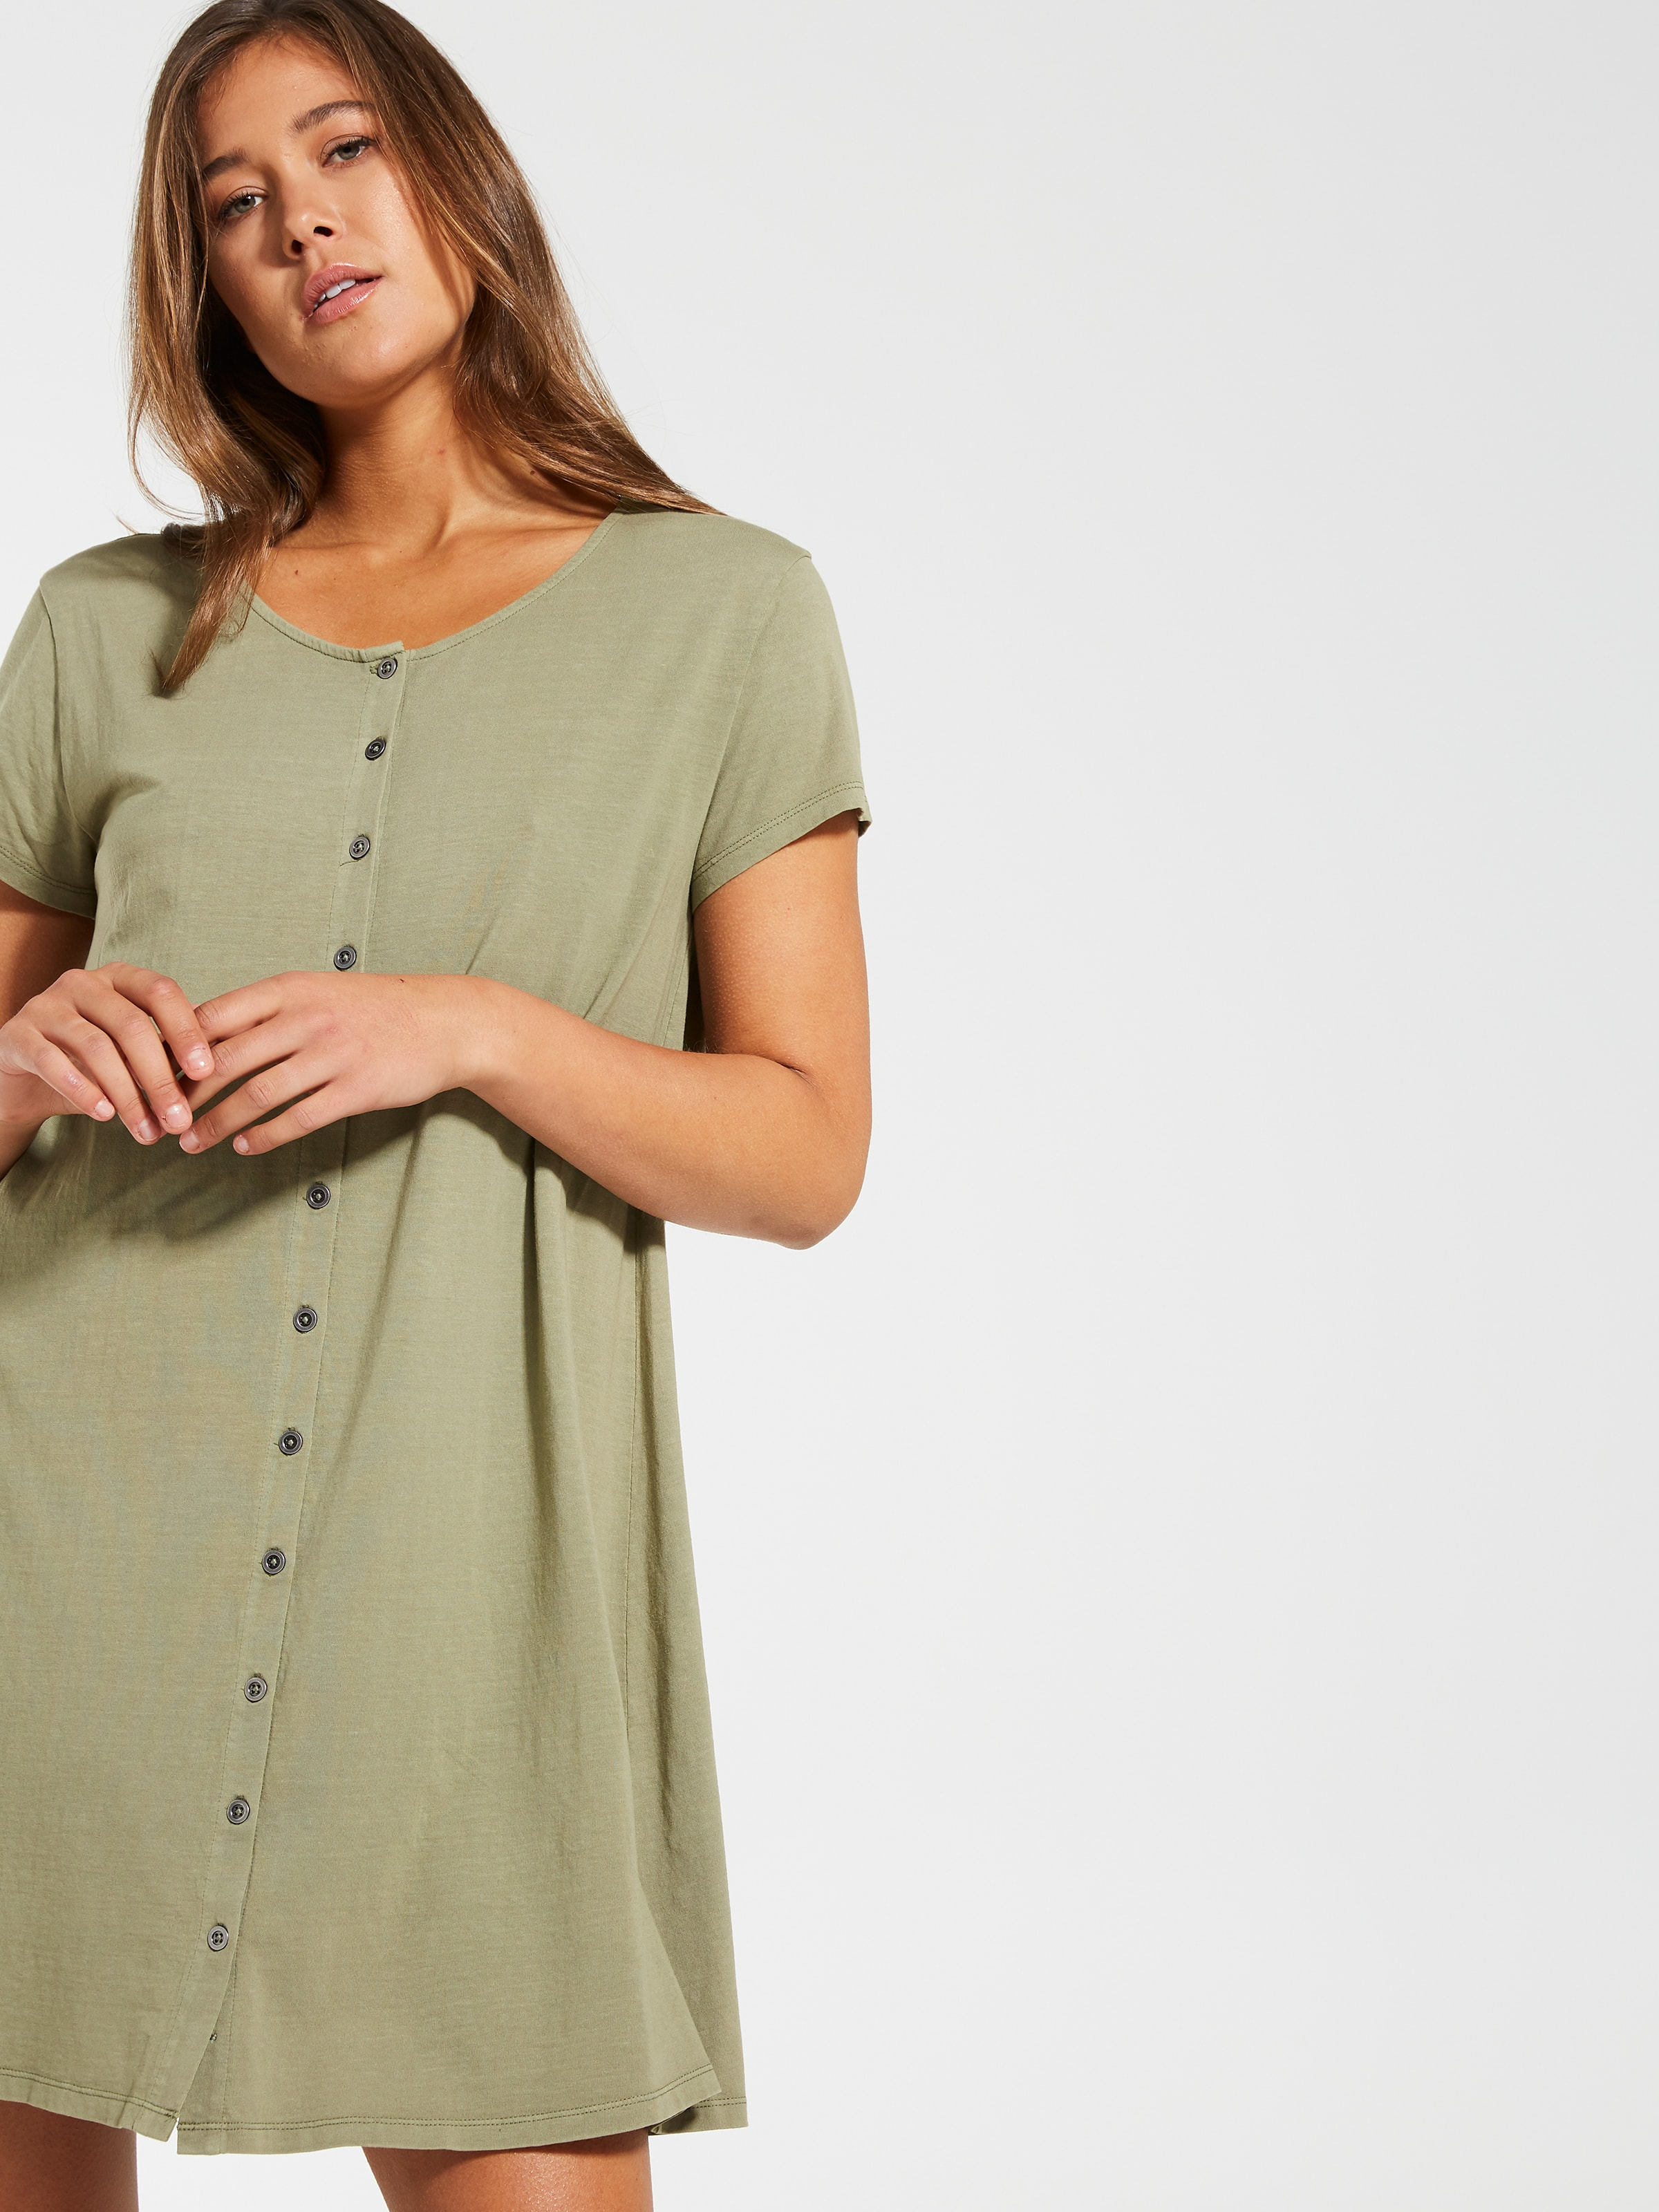 be78319d4fe9 Image for Lily T-Shirt Button Through Dress from Dotti Online ...